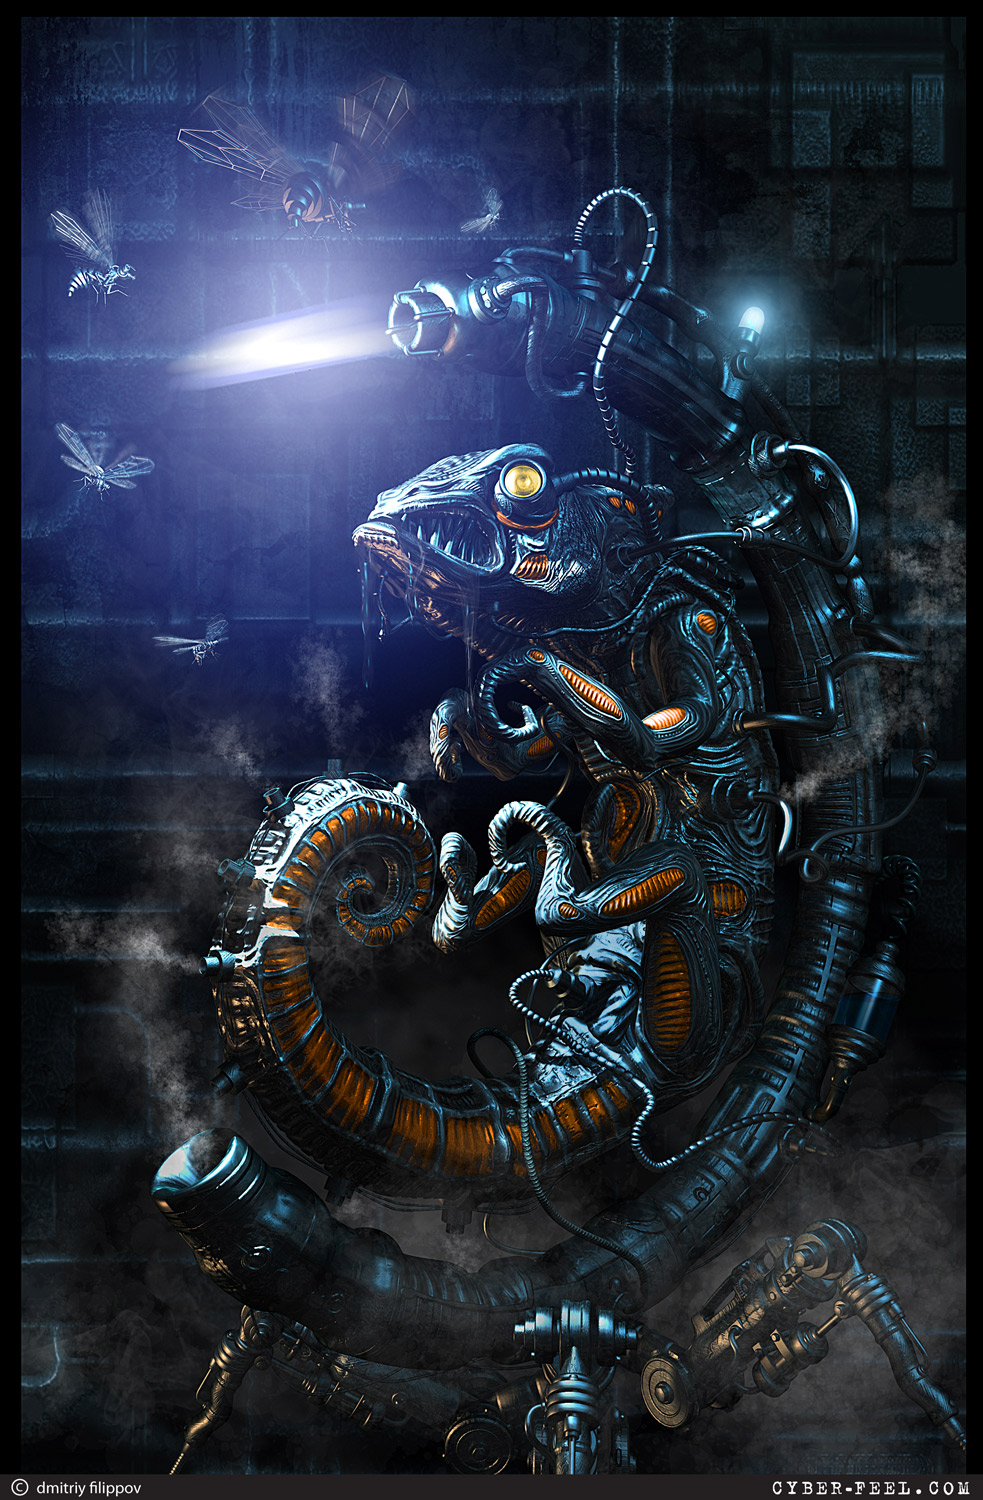 Steampunk art, 3D visualization and hand made work by Dmitriy Filippov